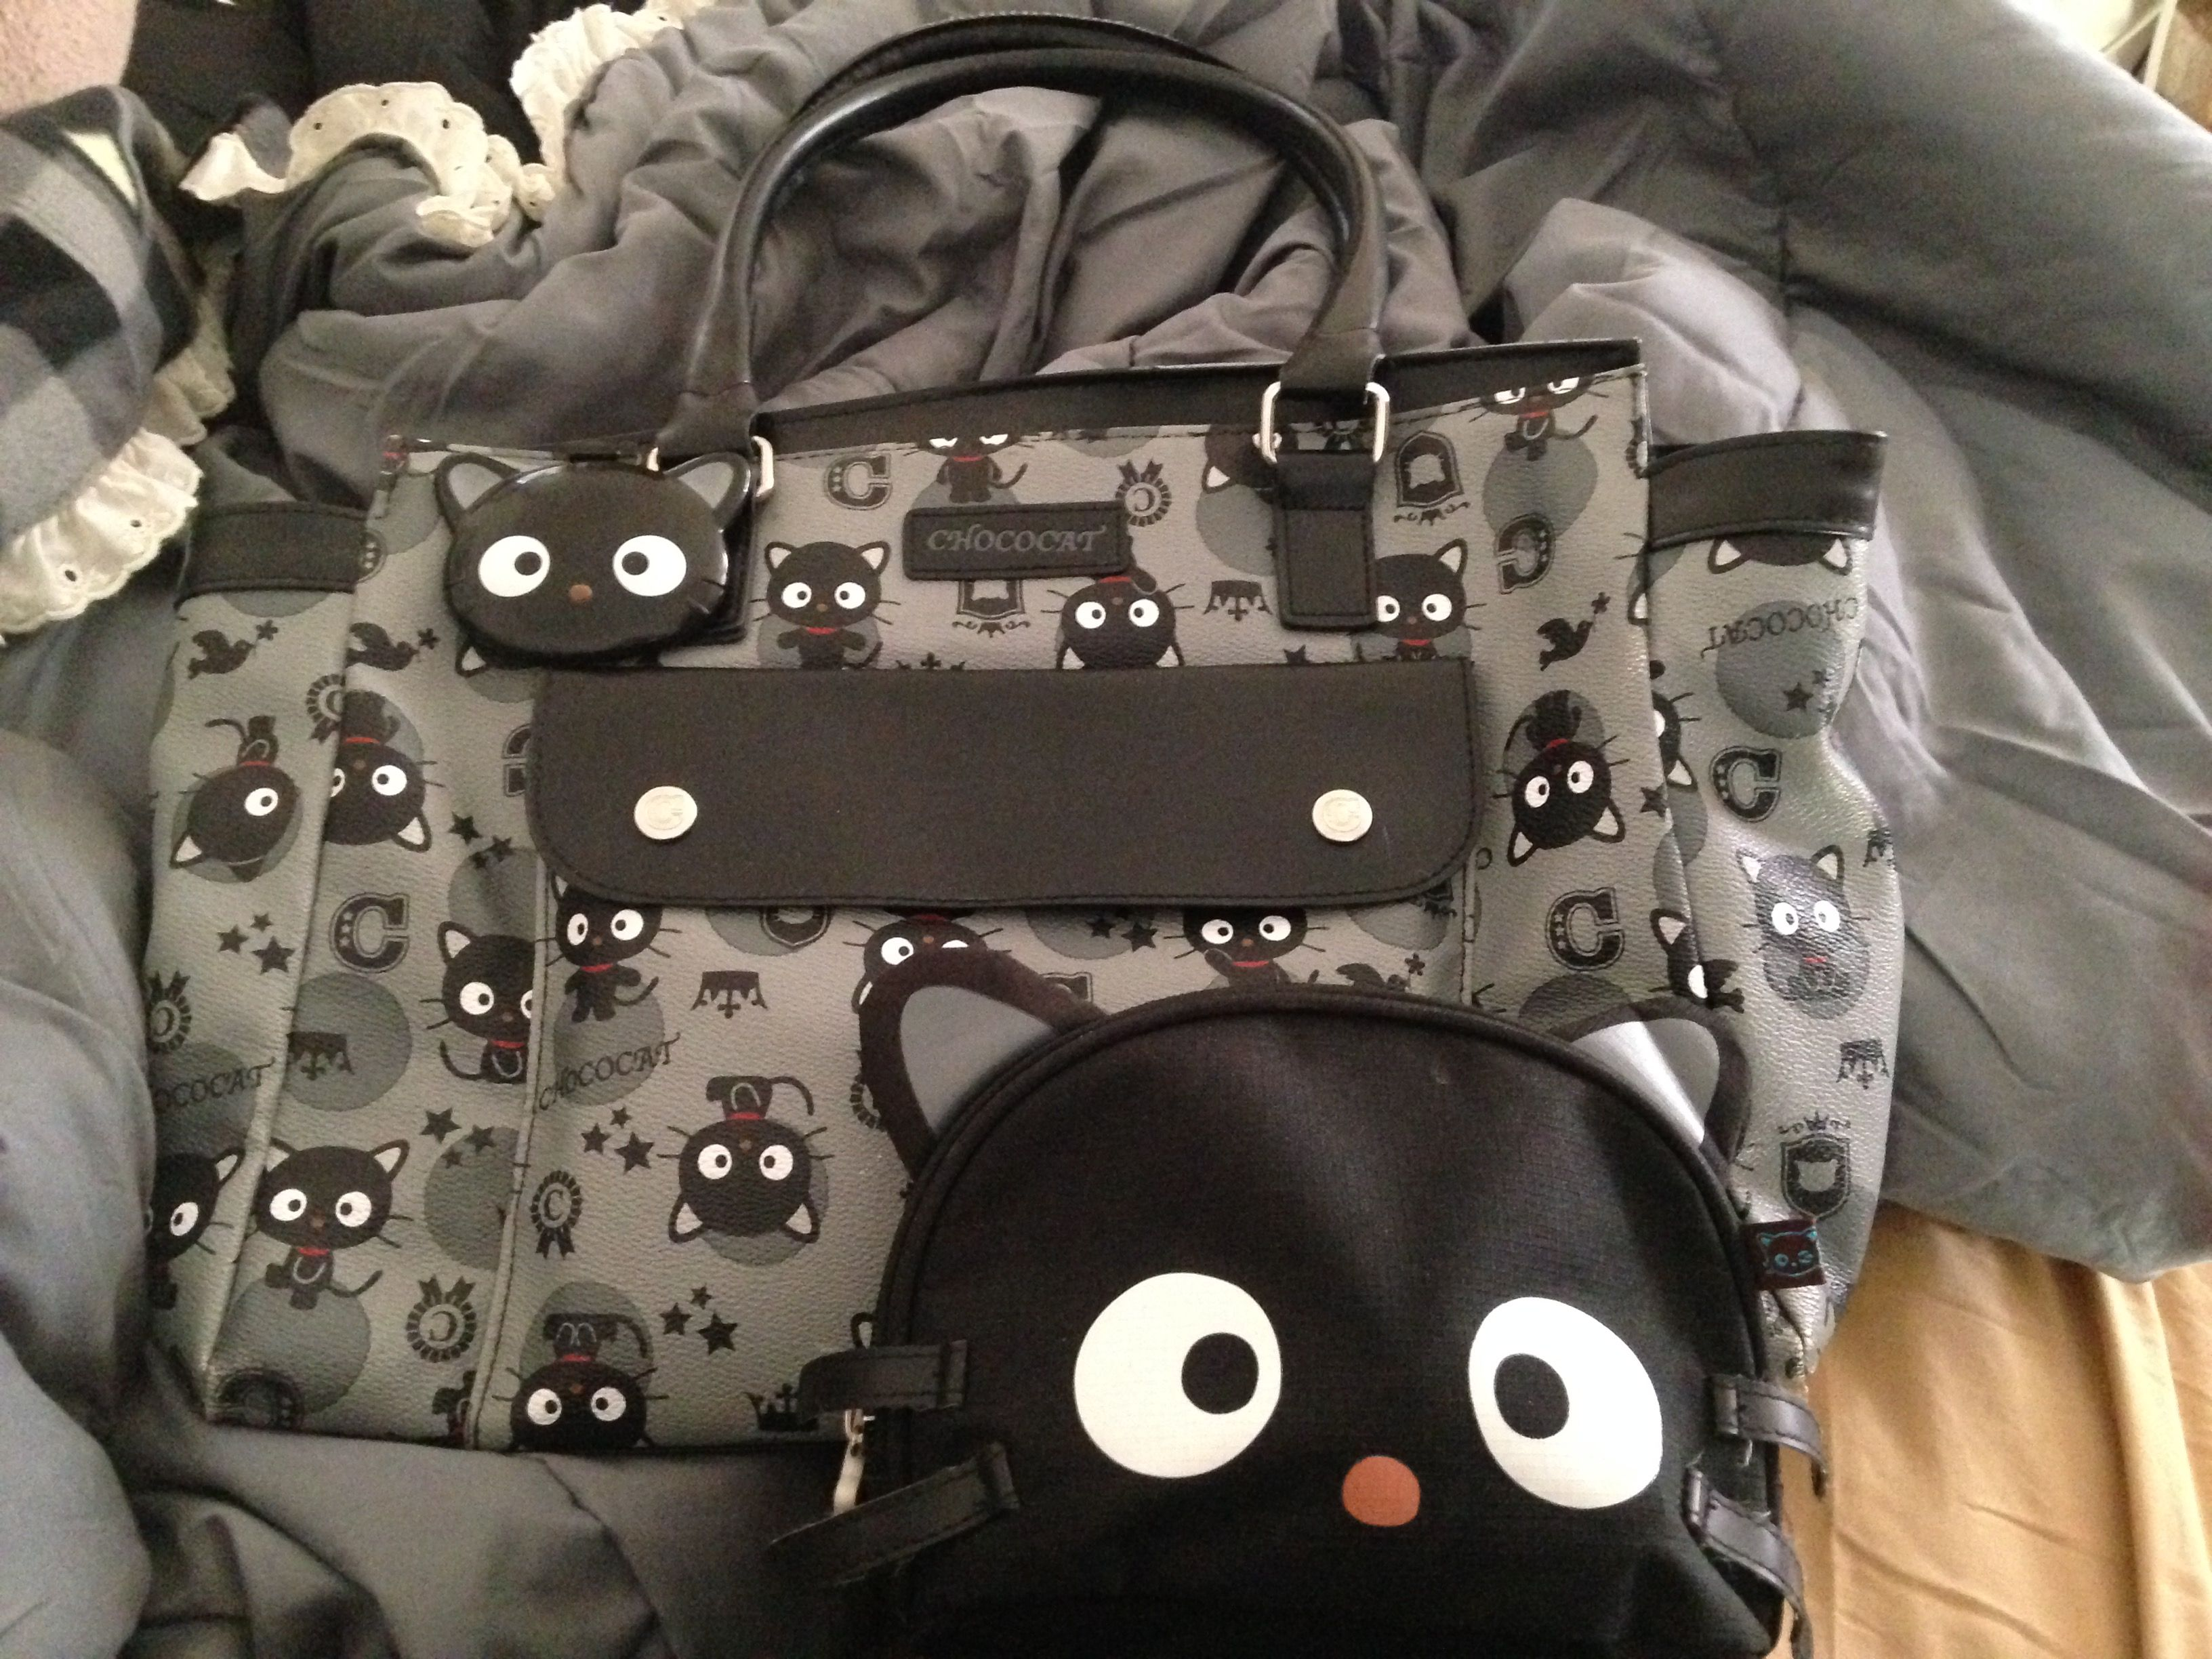 Chococat Purse Cosmetics Bag And Matching Mirror